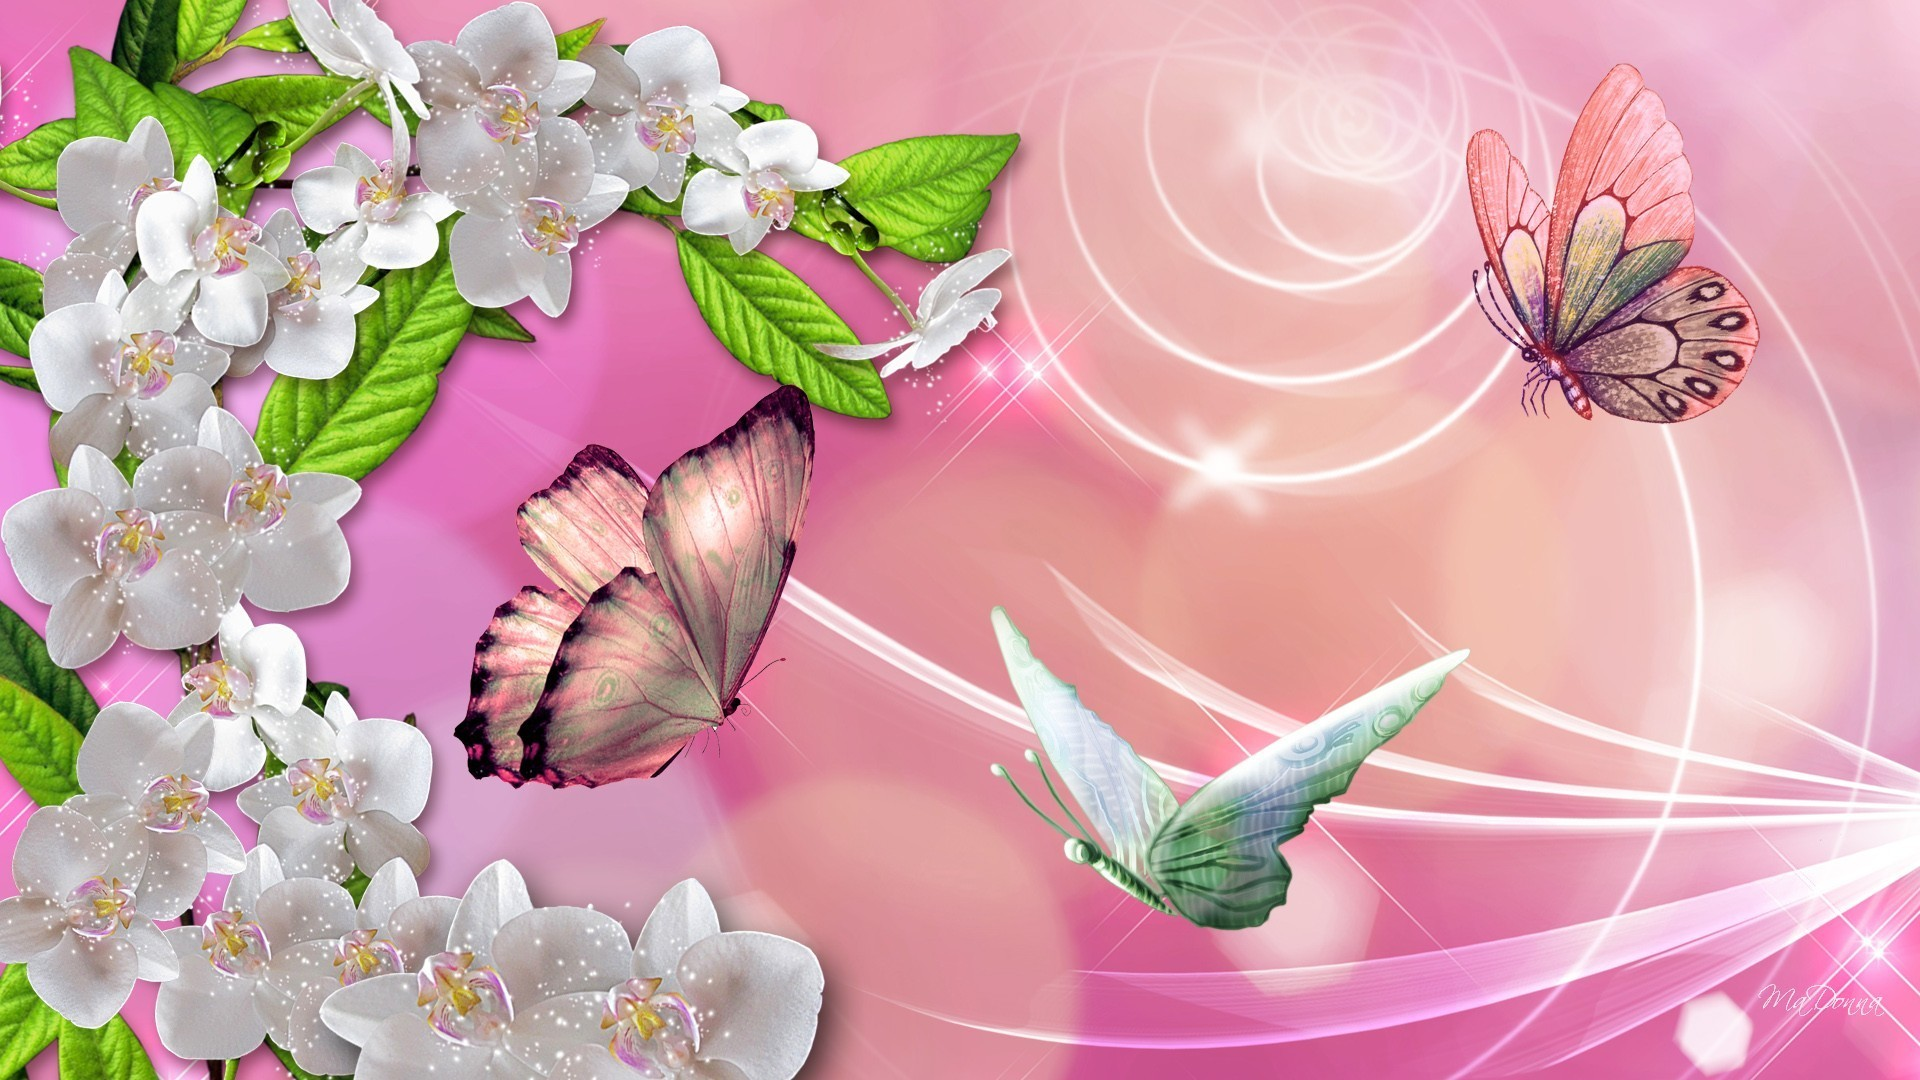 #CC6688 Color – Leaves Swrils Orchids Butterflies Magical Spring Flowers  Summer Pink Sparkles Silk Wallpapers